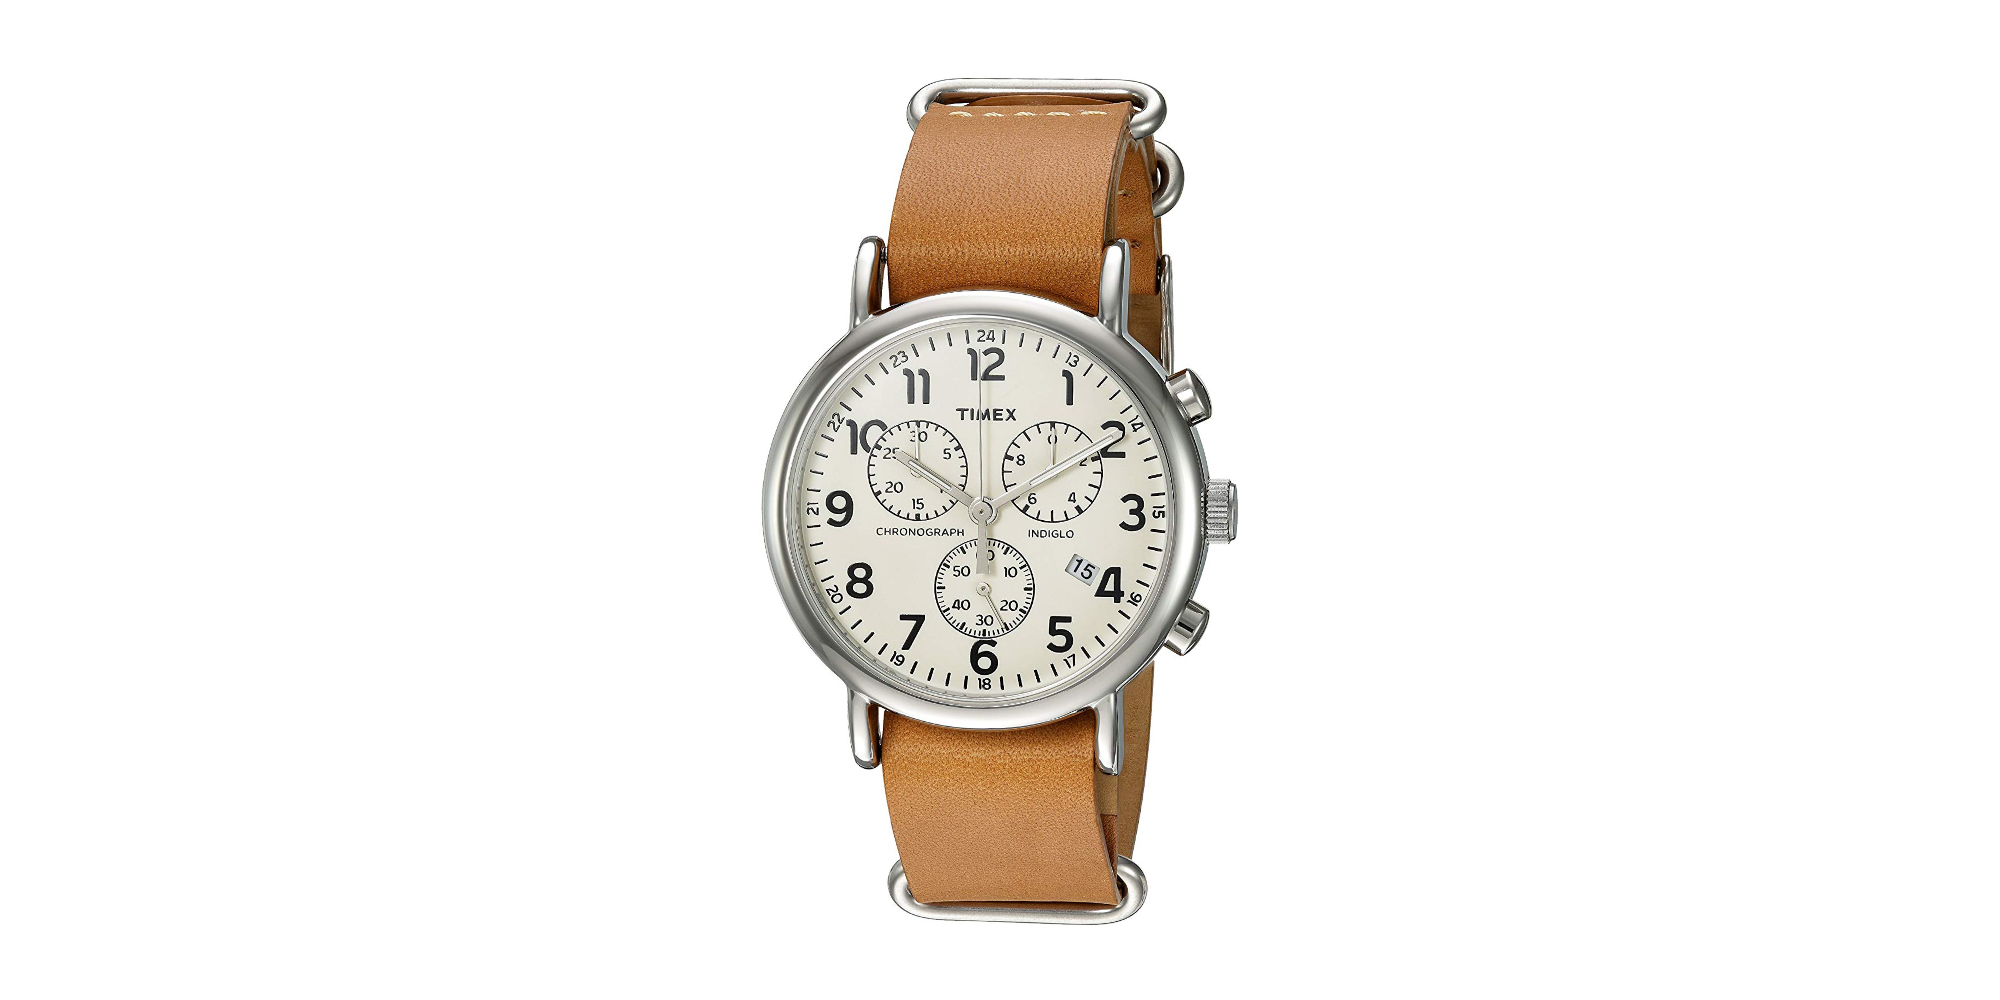 Expand your watch collection with Timex's Unisex Weekender for $41 (Save 30%) - 9to5Toys